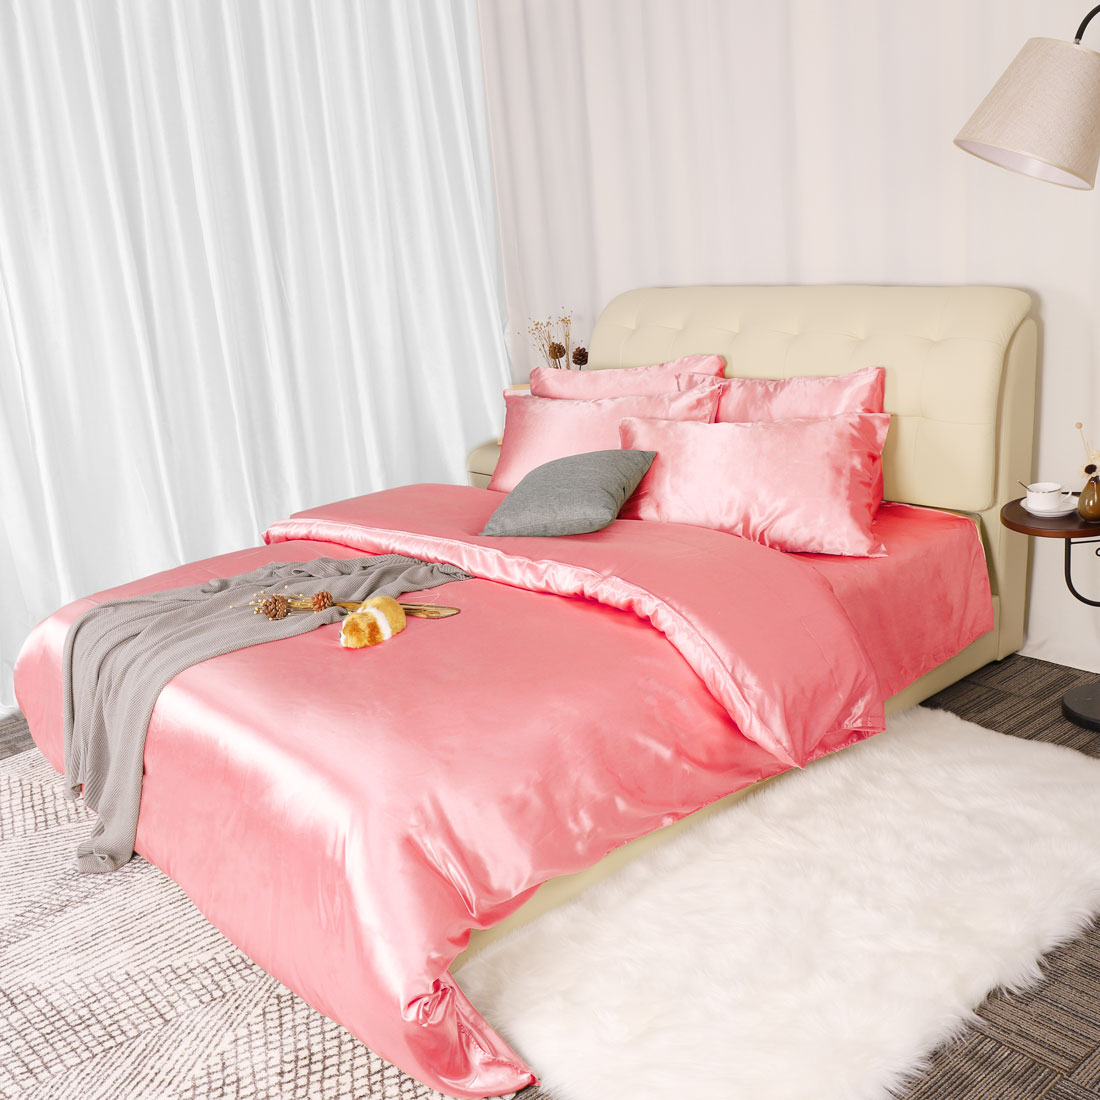 3-Piece-Home-Bedding-Satin-Silk-Duvet-Cover-Set-for-Comforter-Blanket-Three-Size thumbnail 12